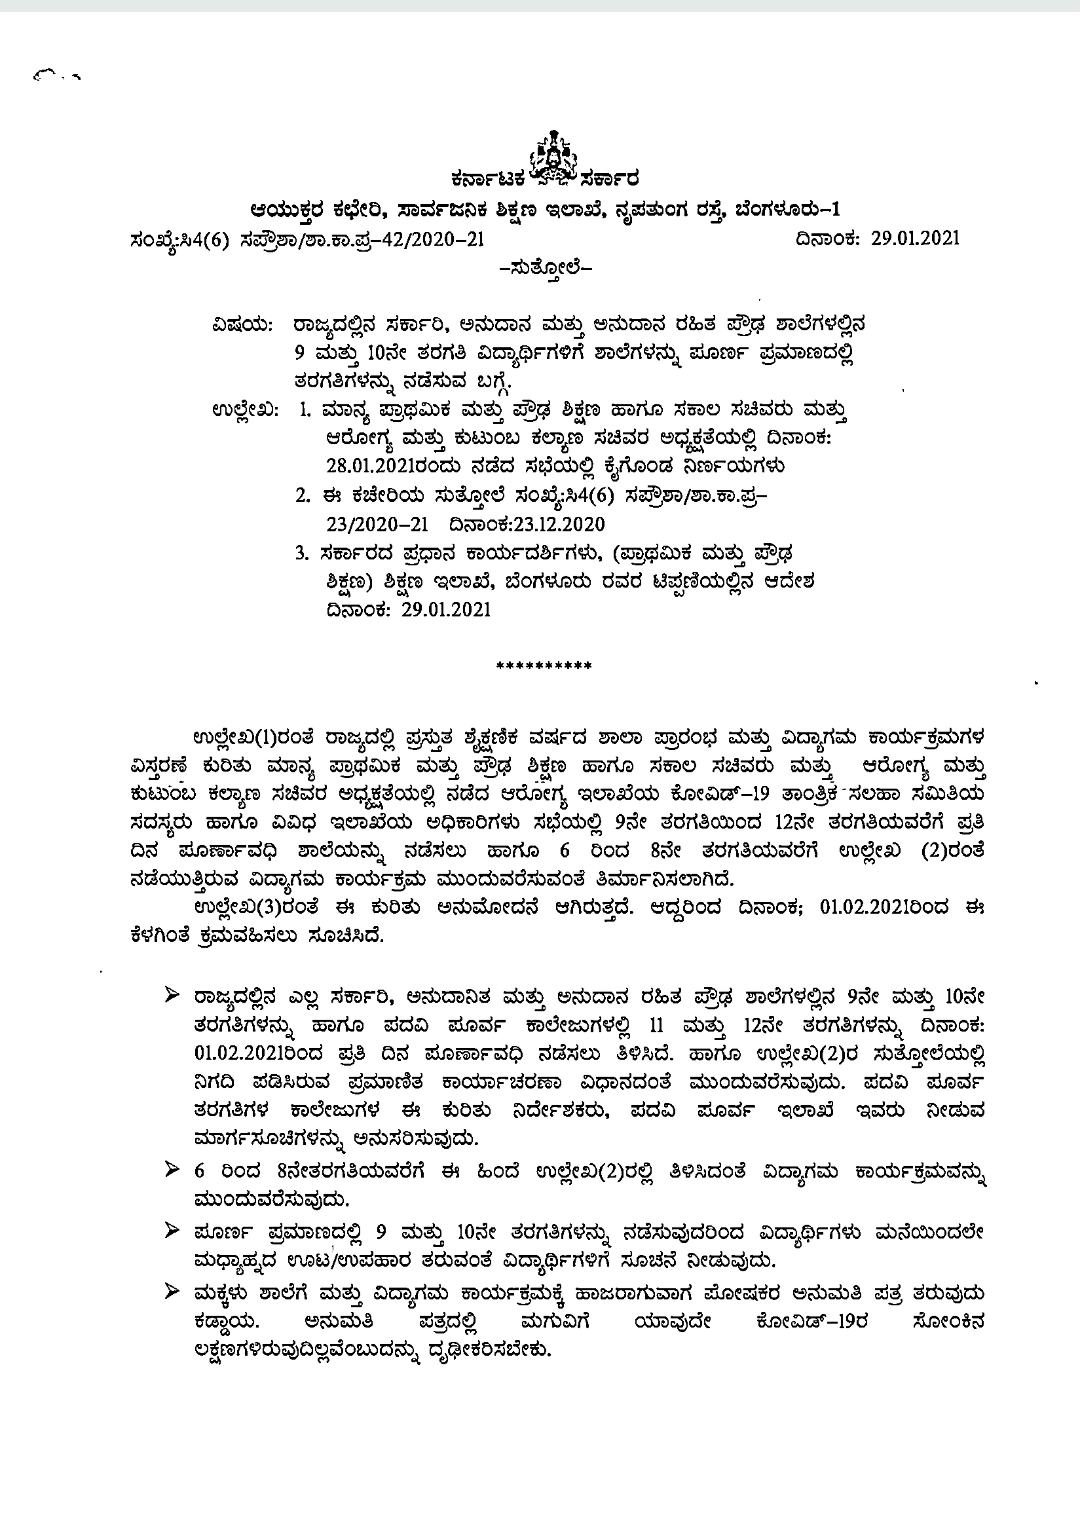 Circular for conducting full-scale classes for schools 9th and 10th standard students in state-funded and unaided high schools in the state